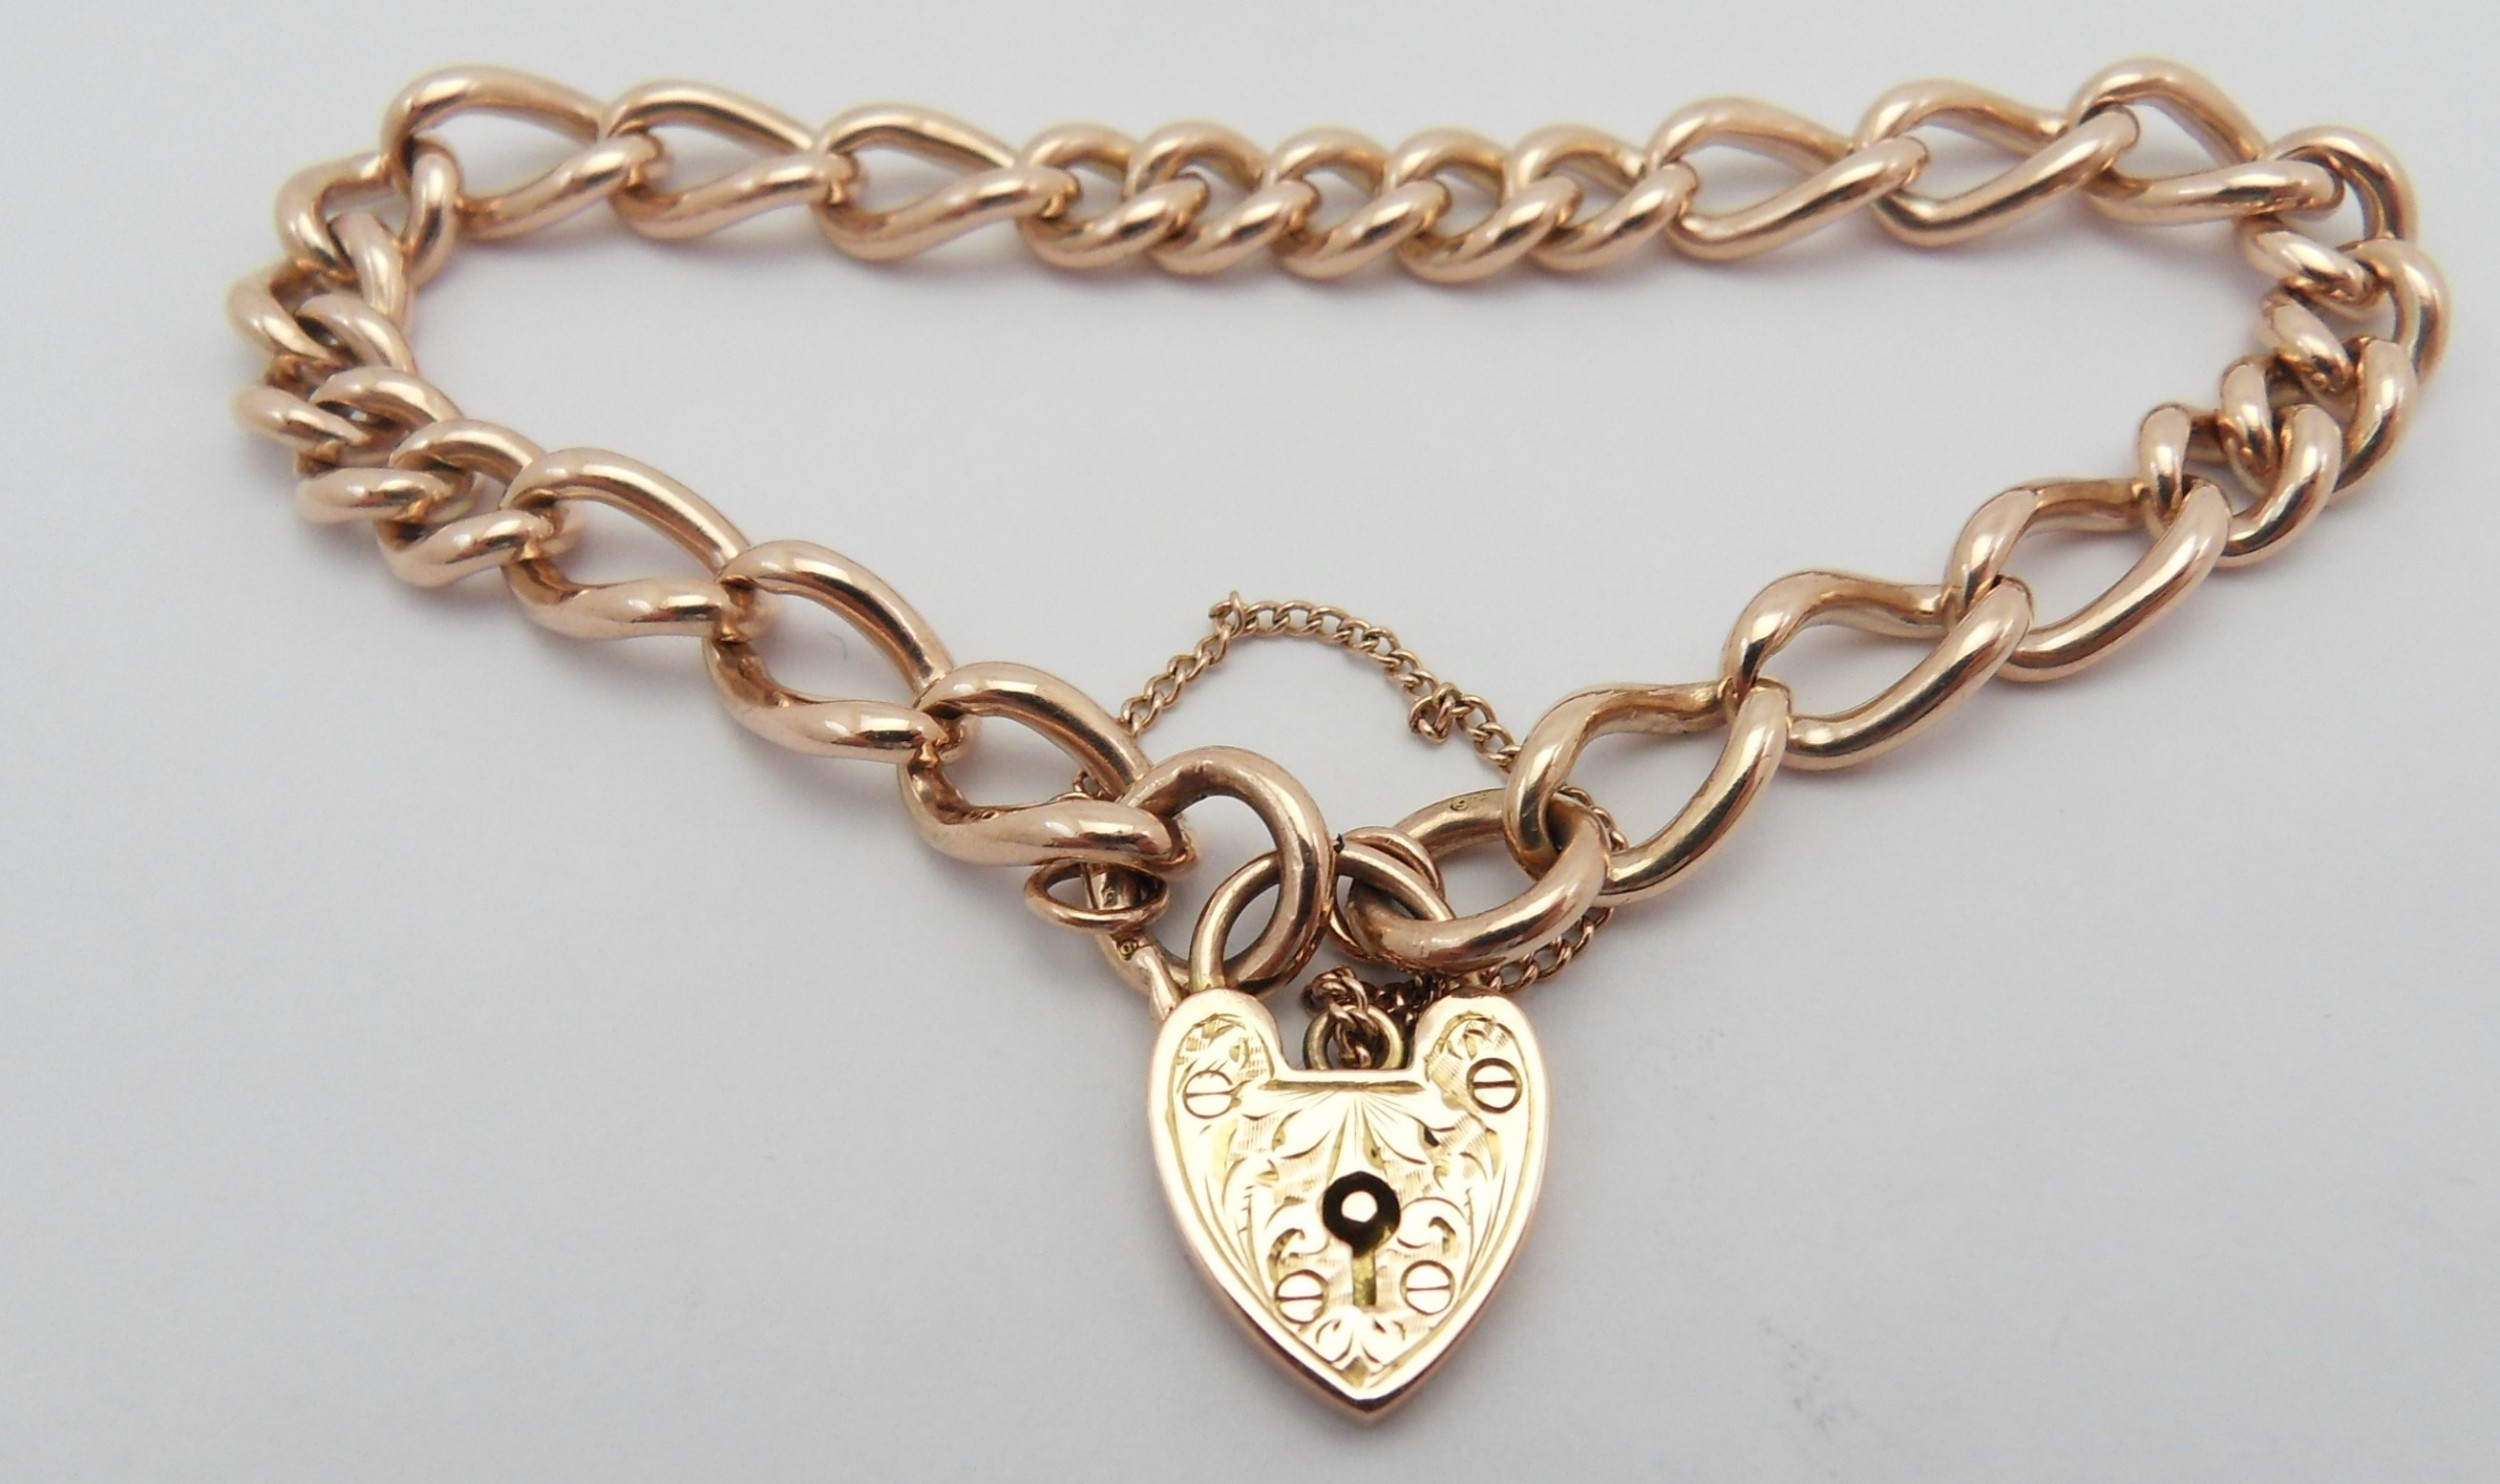 edwardian 9ct rose gold heart clasp bracelet